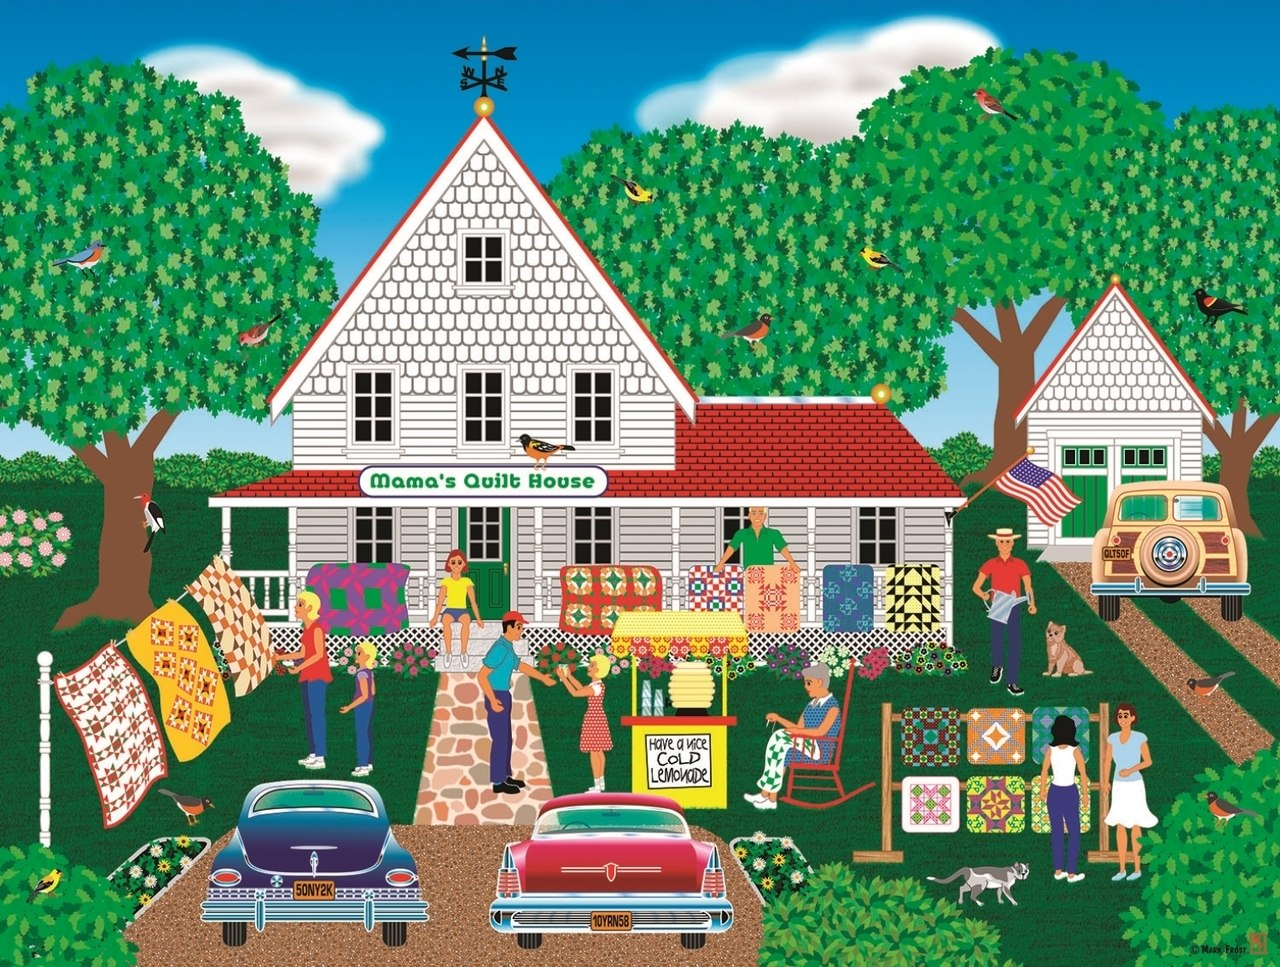 Mama's Quilt House - 1000pc Jigsaw Puzzle By Sunsout  			  					NEW